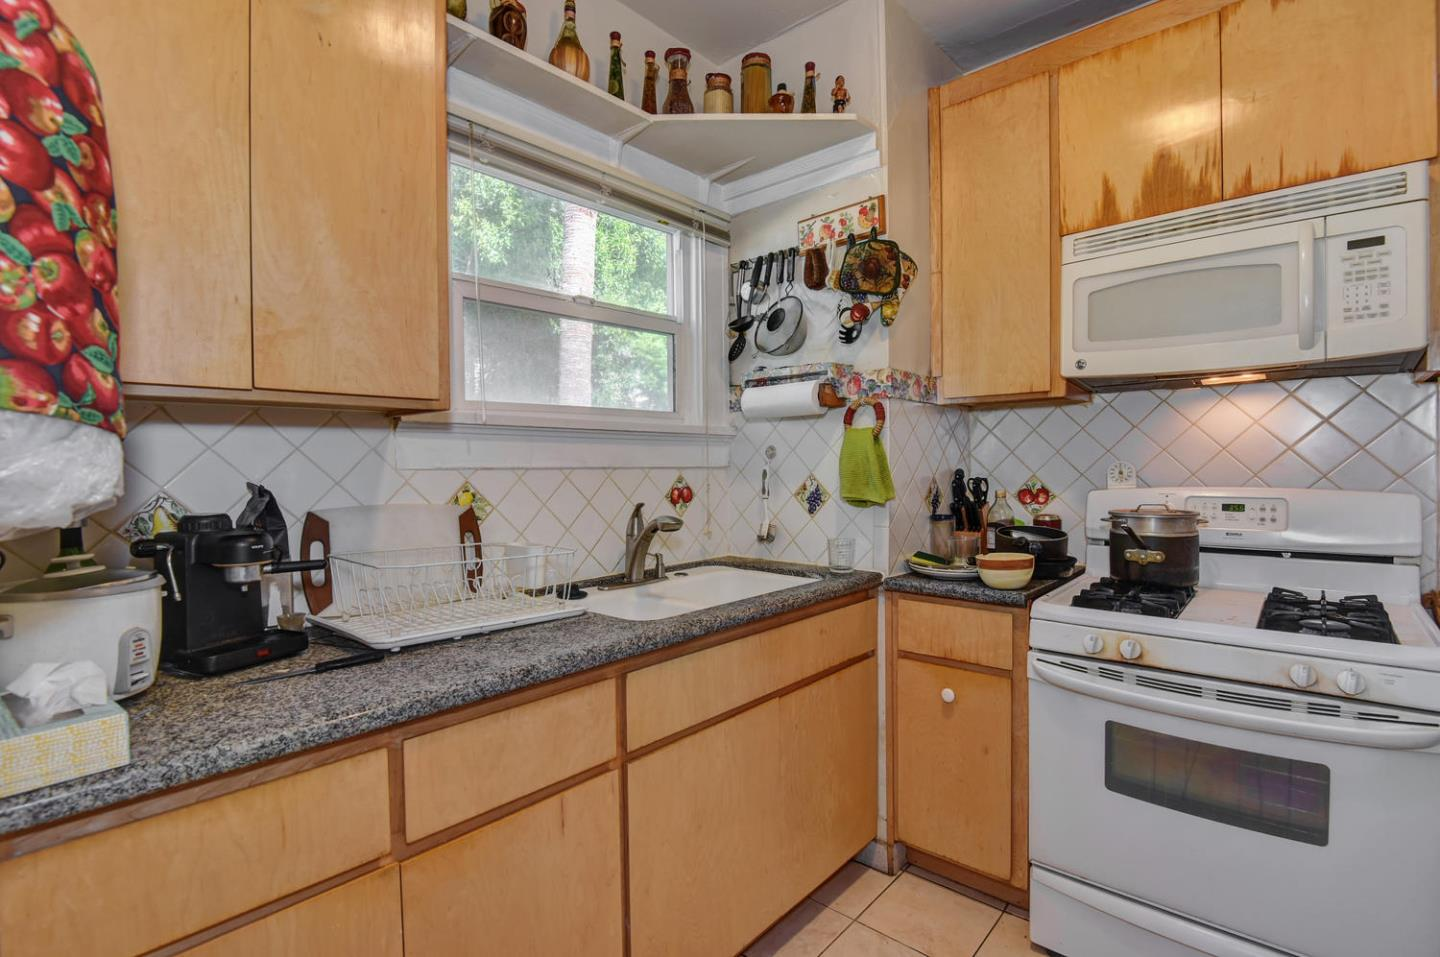 Additional photo for property listing at 70-74 N 10th Street  San Jose, カリフォルニア 95112 アメリカ合衆国